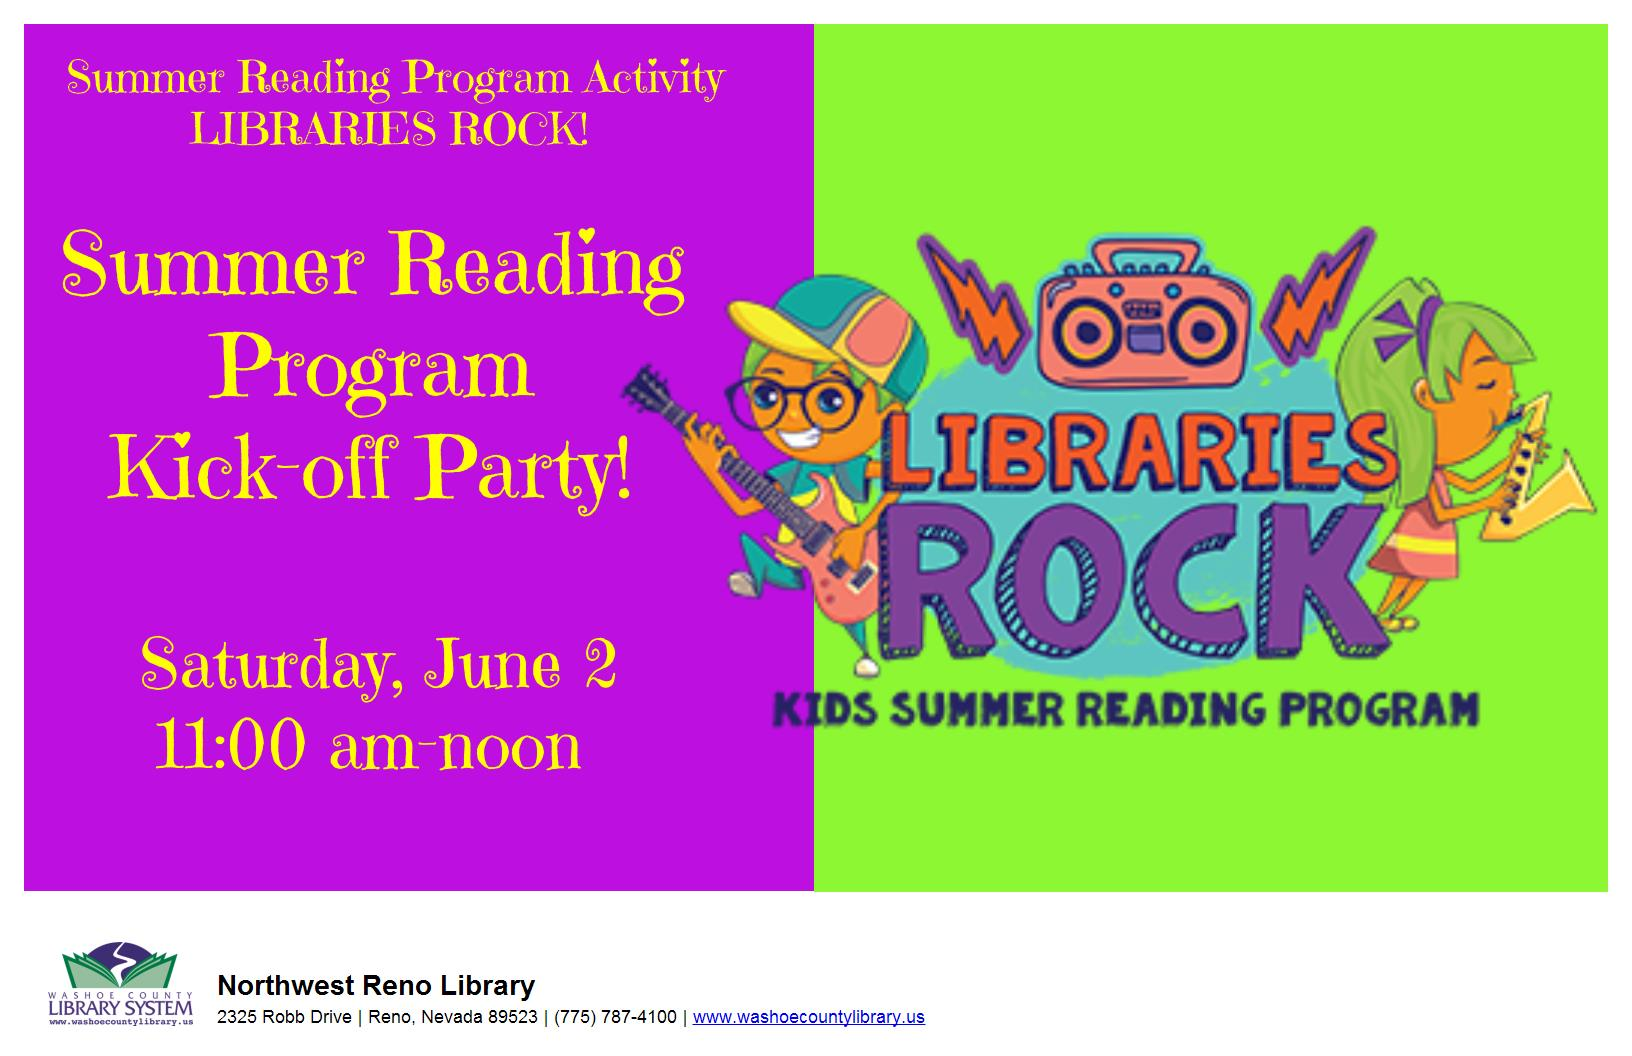 Summer Reading Program Kick-Off Party